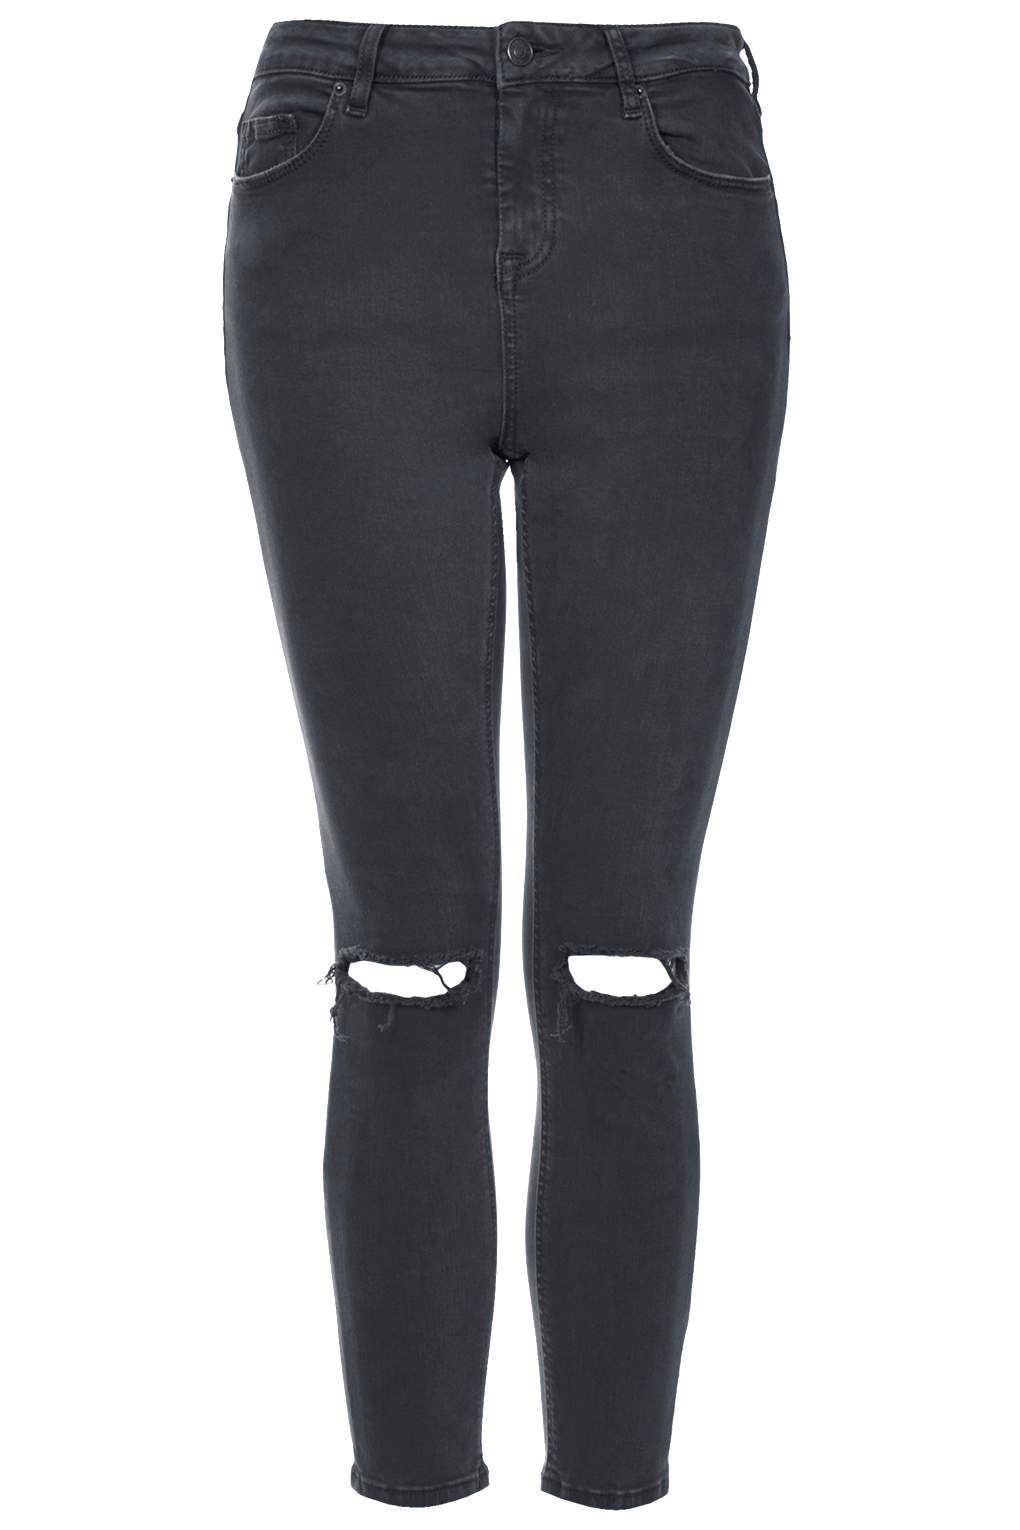 Find Black petite jeans at ShopStyle. Shop the latest collection of Black petite jeans from the most popular stores - all in one place.